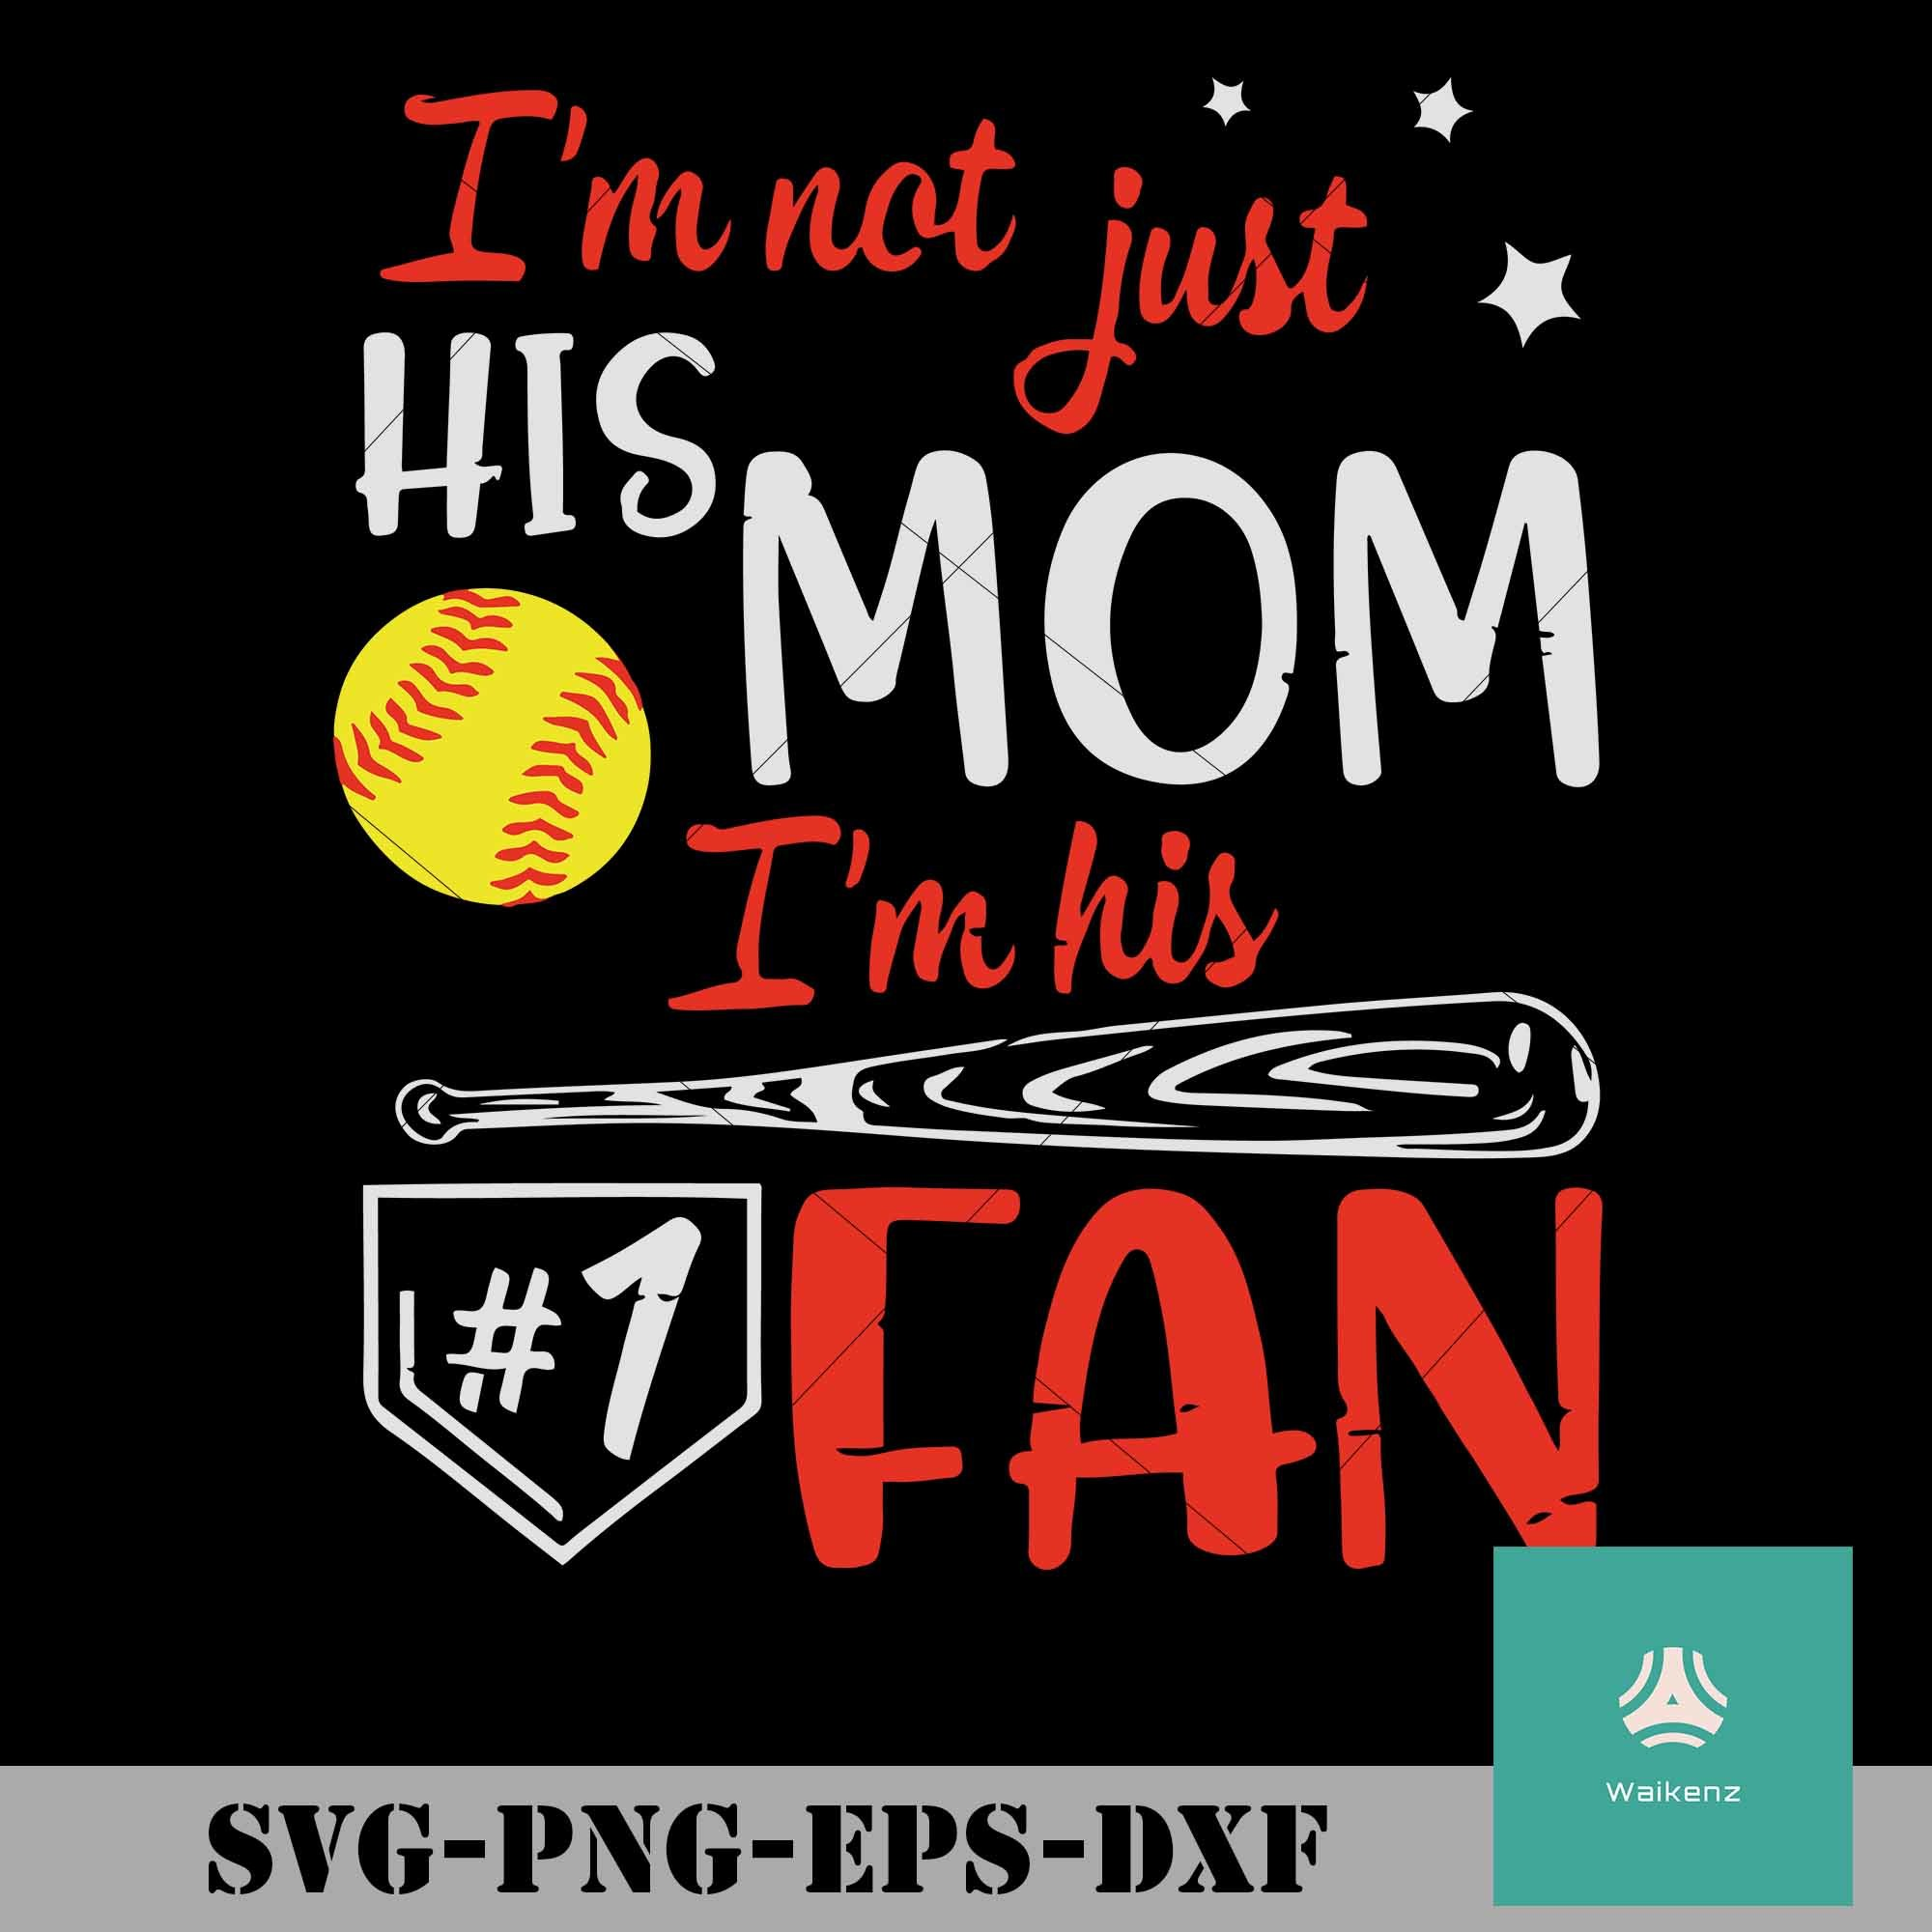 I Am Not Just His Mom I Am His First Fan Svg By Zonestore On Zibbet